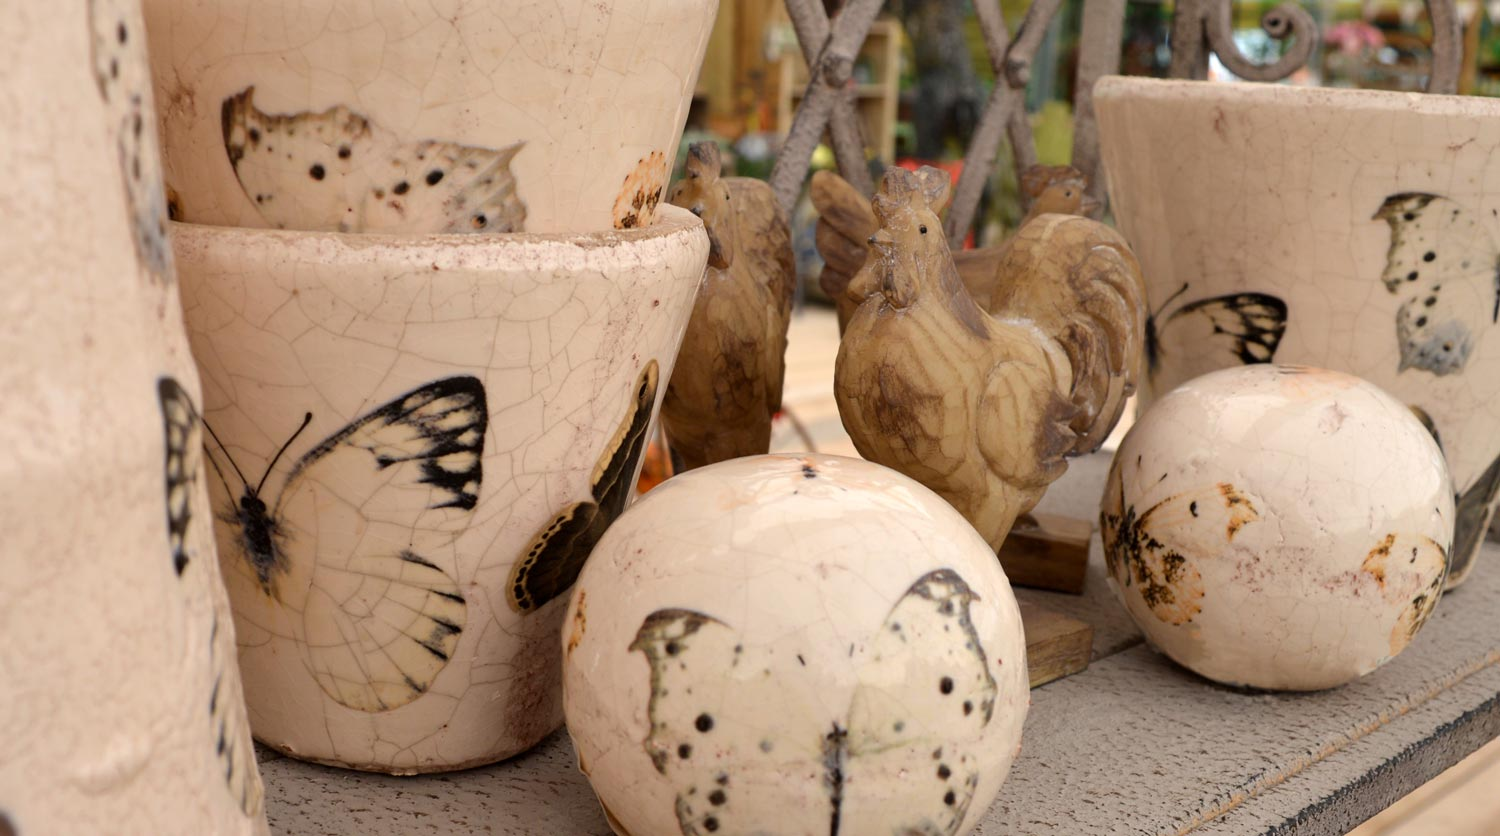 Cracked-effect ceramic pots and balls with butterfly print. Wooden chickens in background